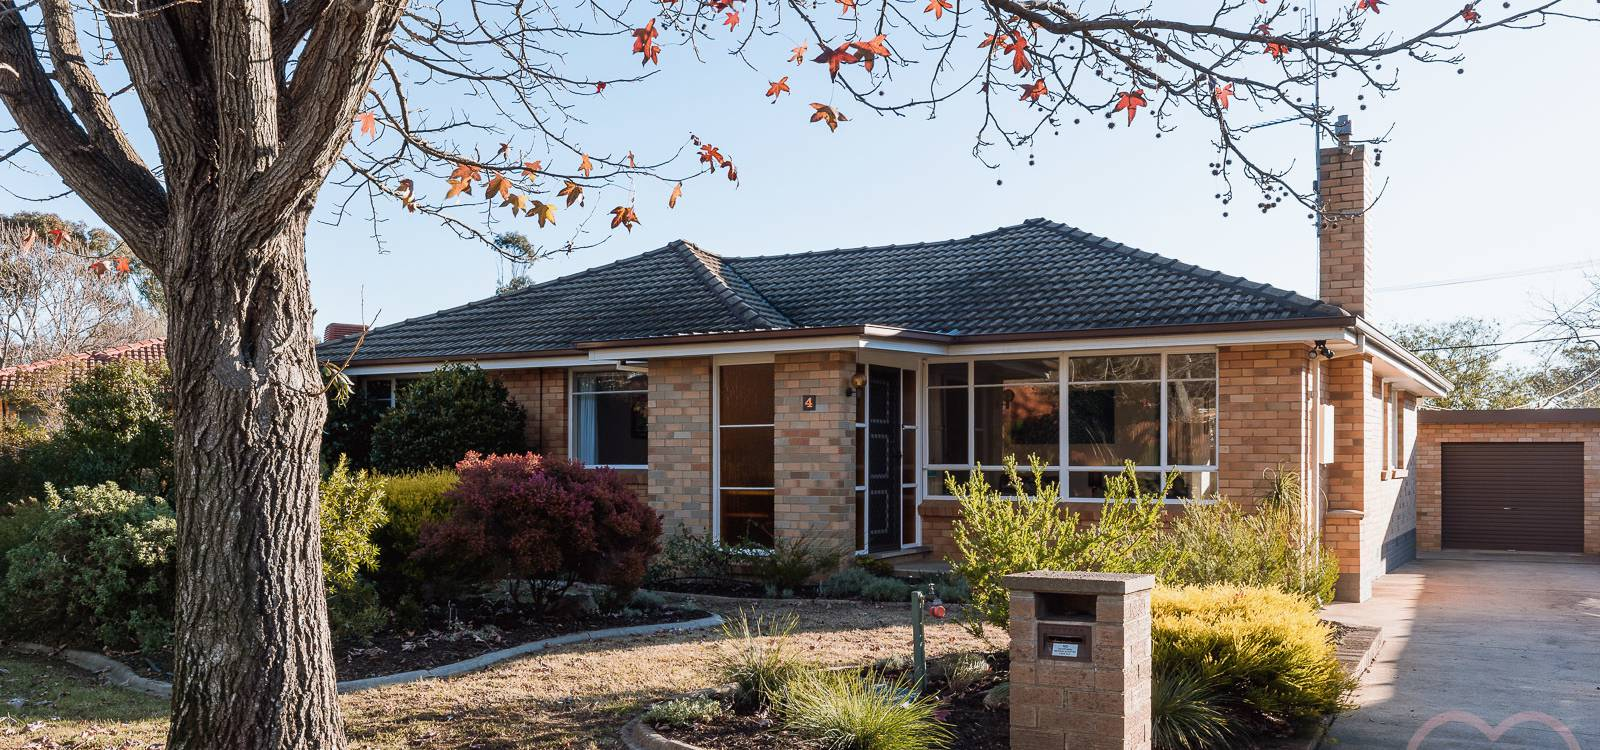 4 Rooth Place WATSON, ACT 2602 - photo 1